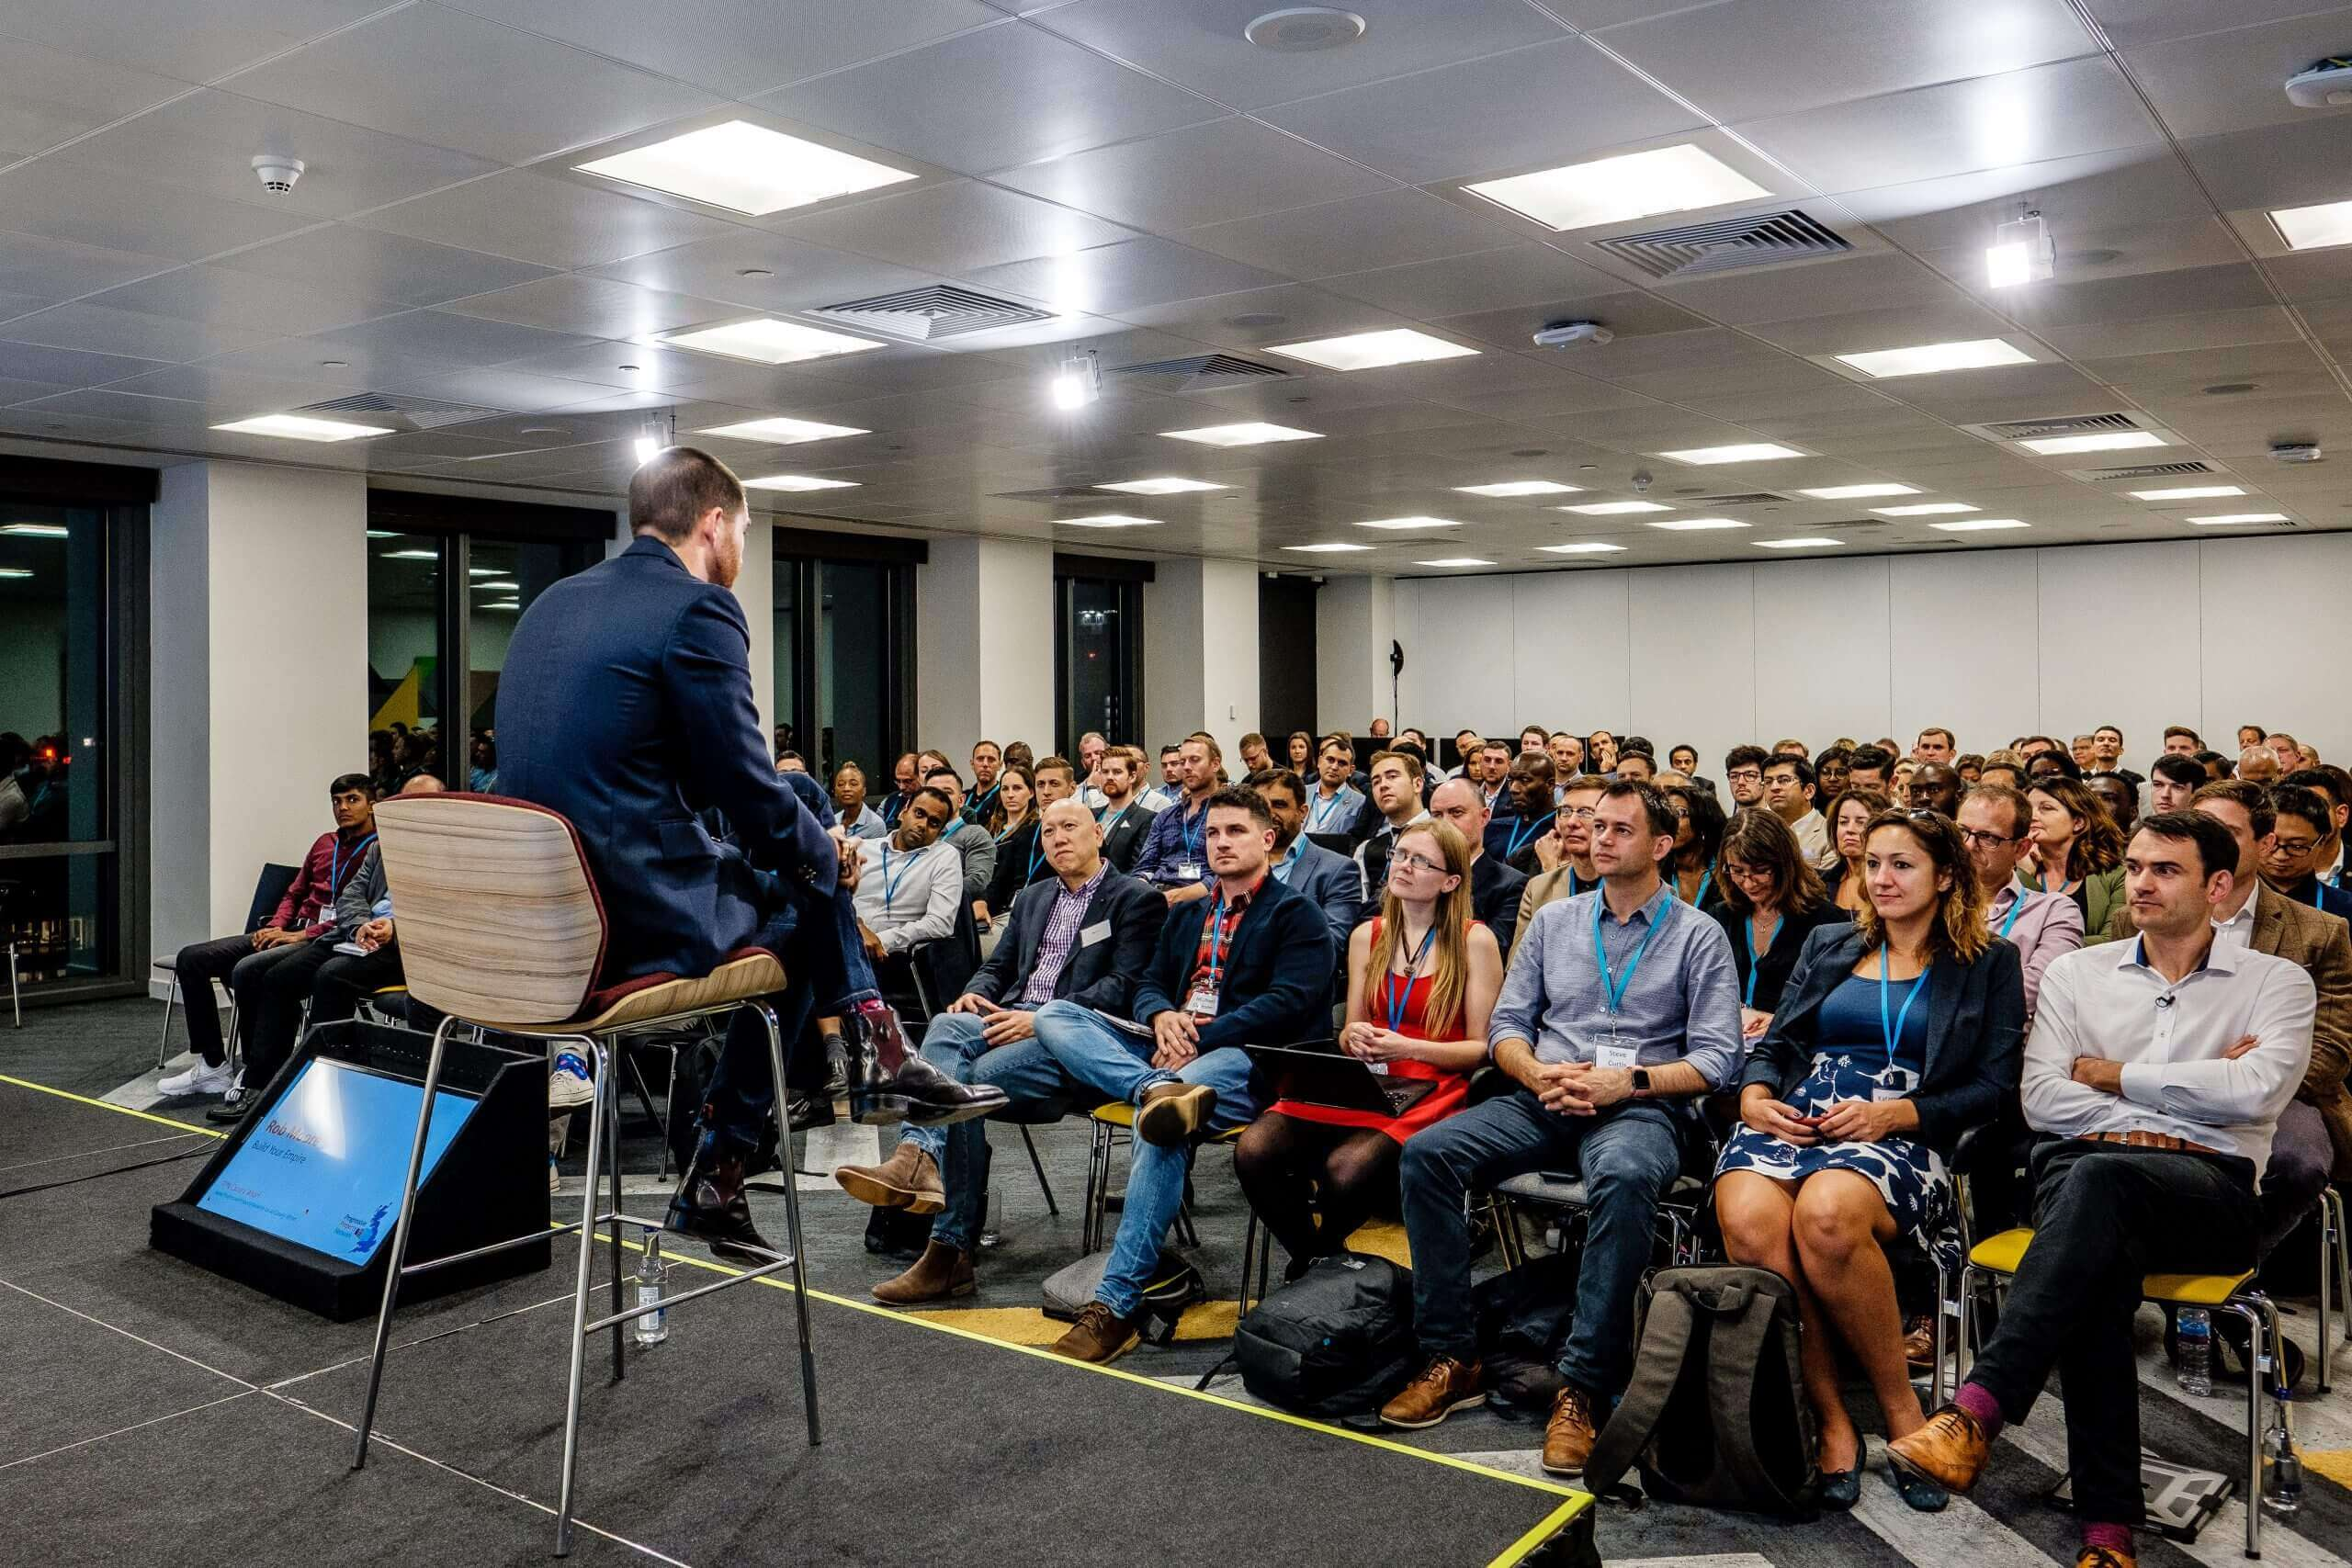 How can you get better at property networking event?